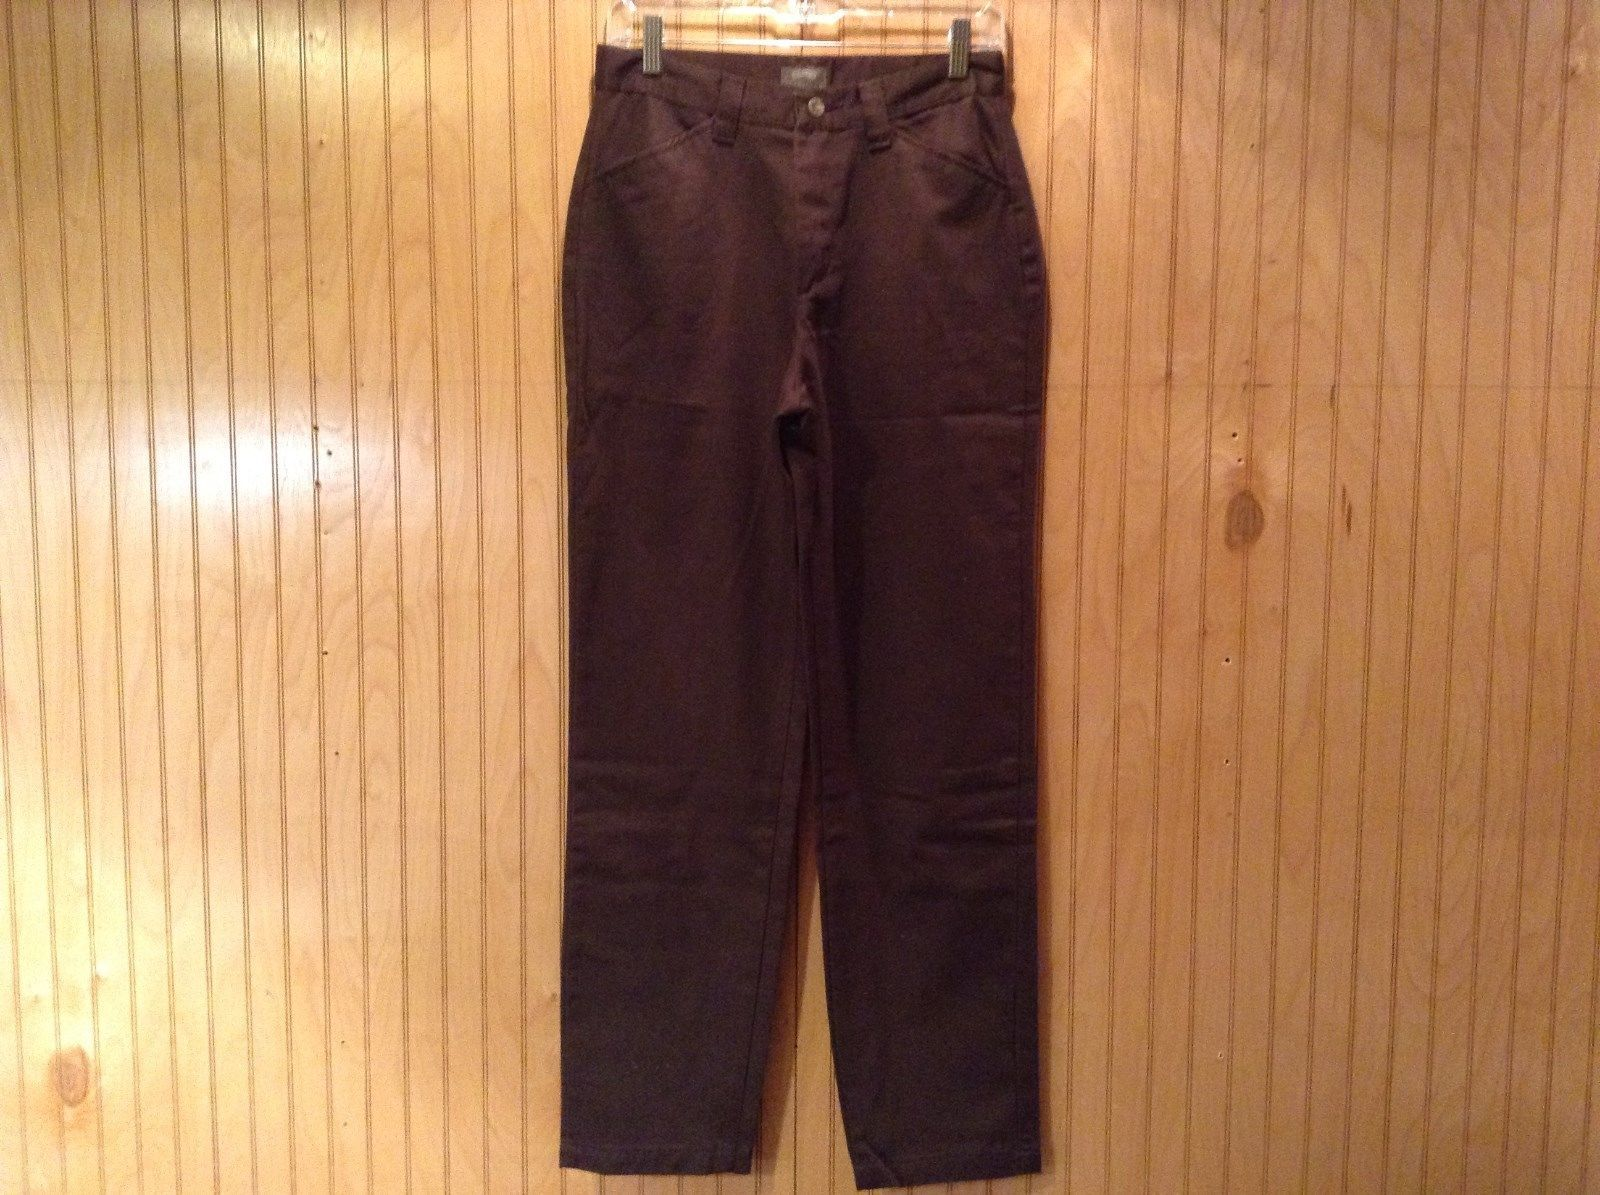 Riders Casuals Brown Colored Jeans Size 6 Medium 2 Front Pockets Zipper